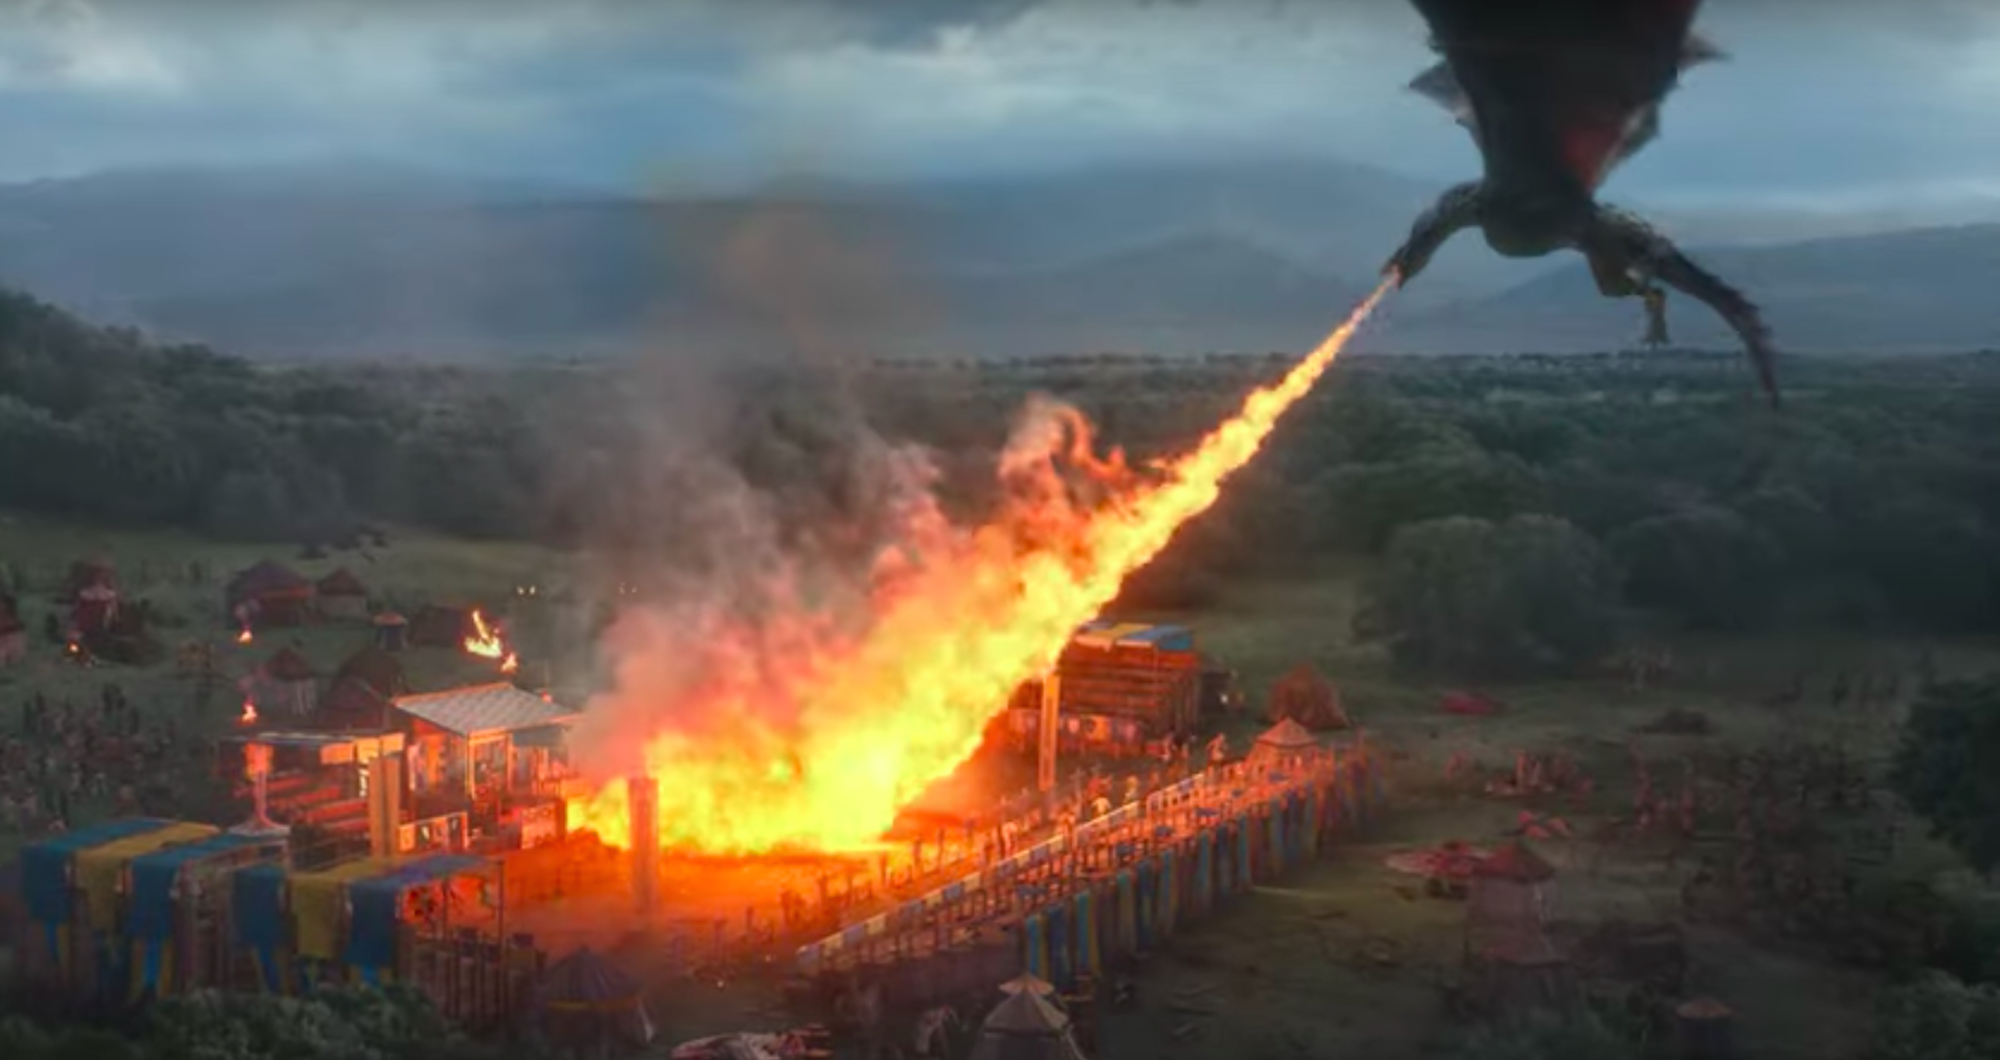 Game of Thrones' Meets Bud Light in Outrageous Super Bowl